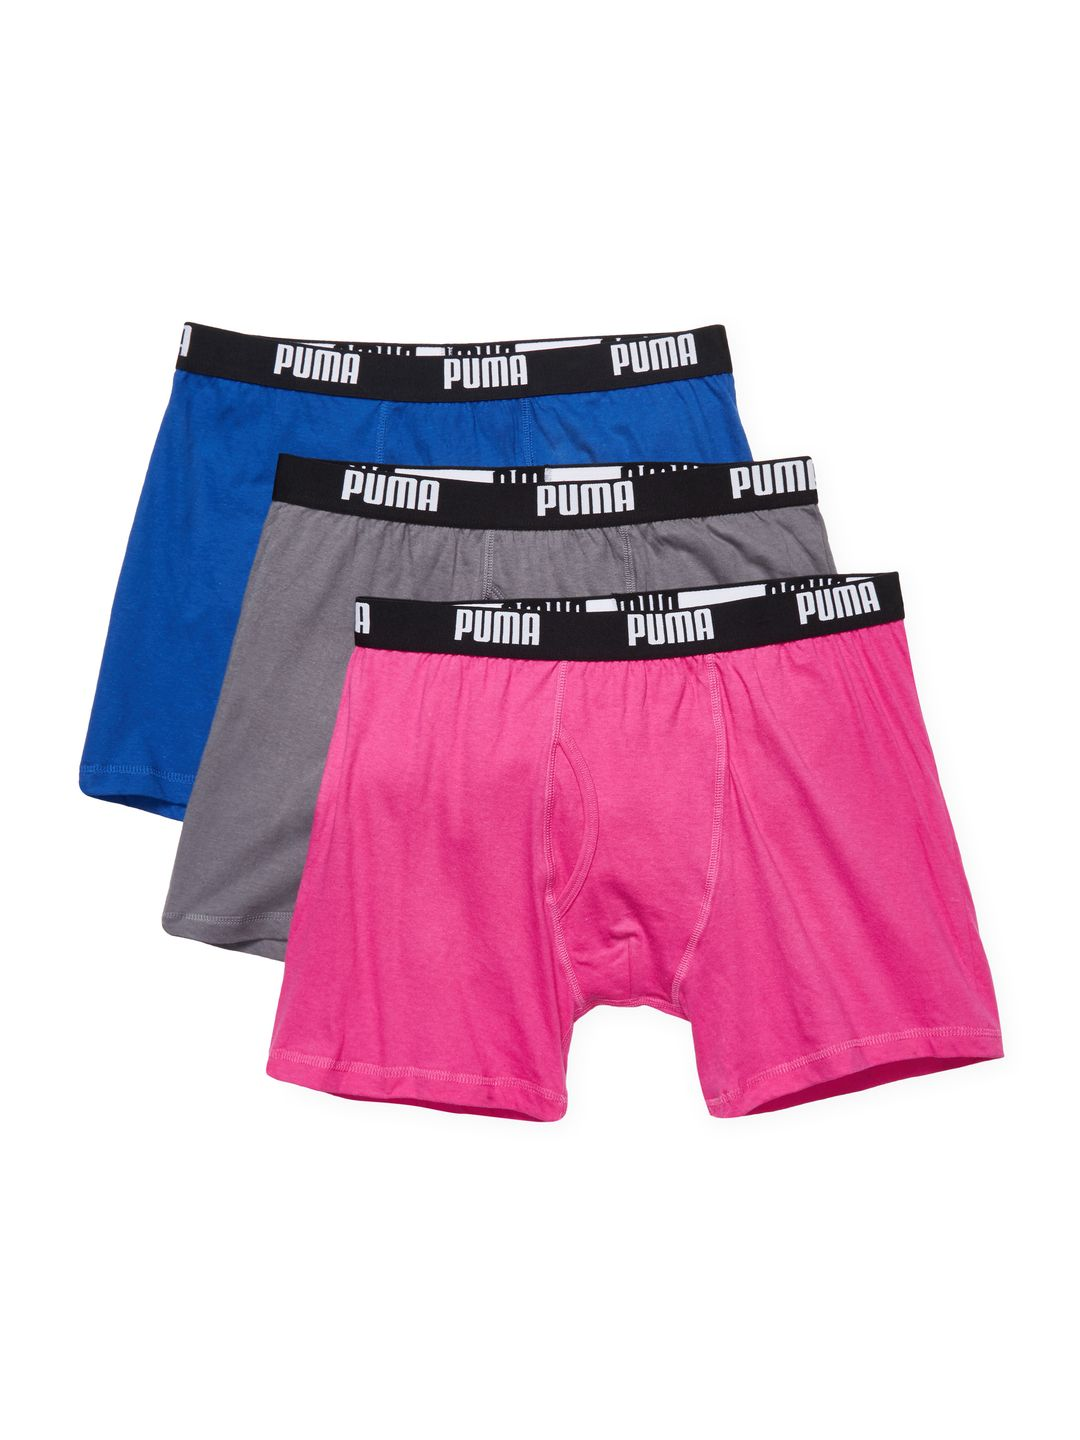 PUMA MEN'S COTTON VOLUME BOXER BRIEF (3 PK) SIZE S. #puma